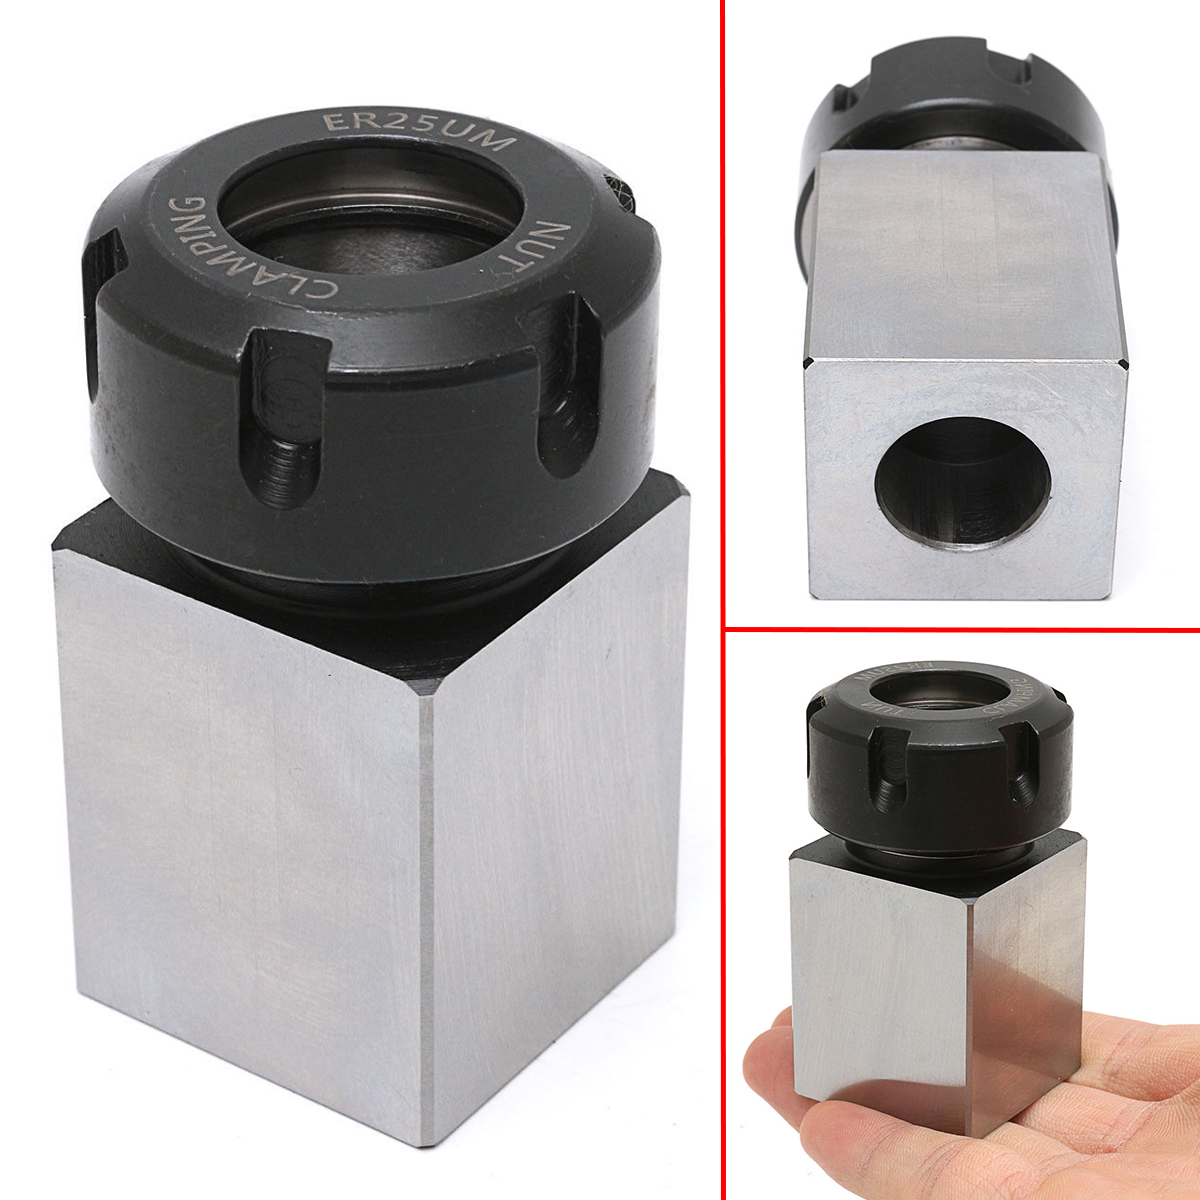 1pc ER-25 Square Collet Chuck Holder Block 3900-5123 35x65mm For Lathe Engraving Machine 1pc er 32 square collet chuck block holder 3900 5124 hard steel 45x65mm for cnc lathe engraving machine